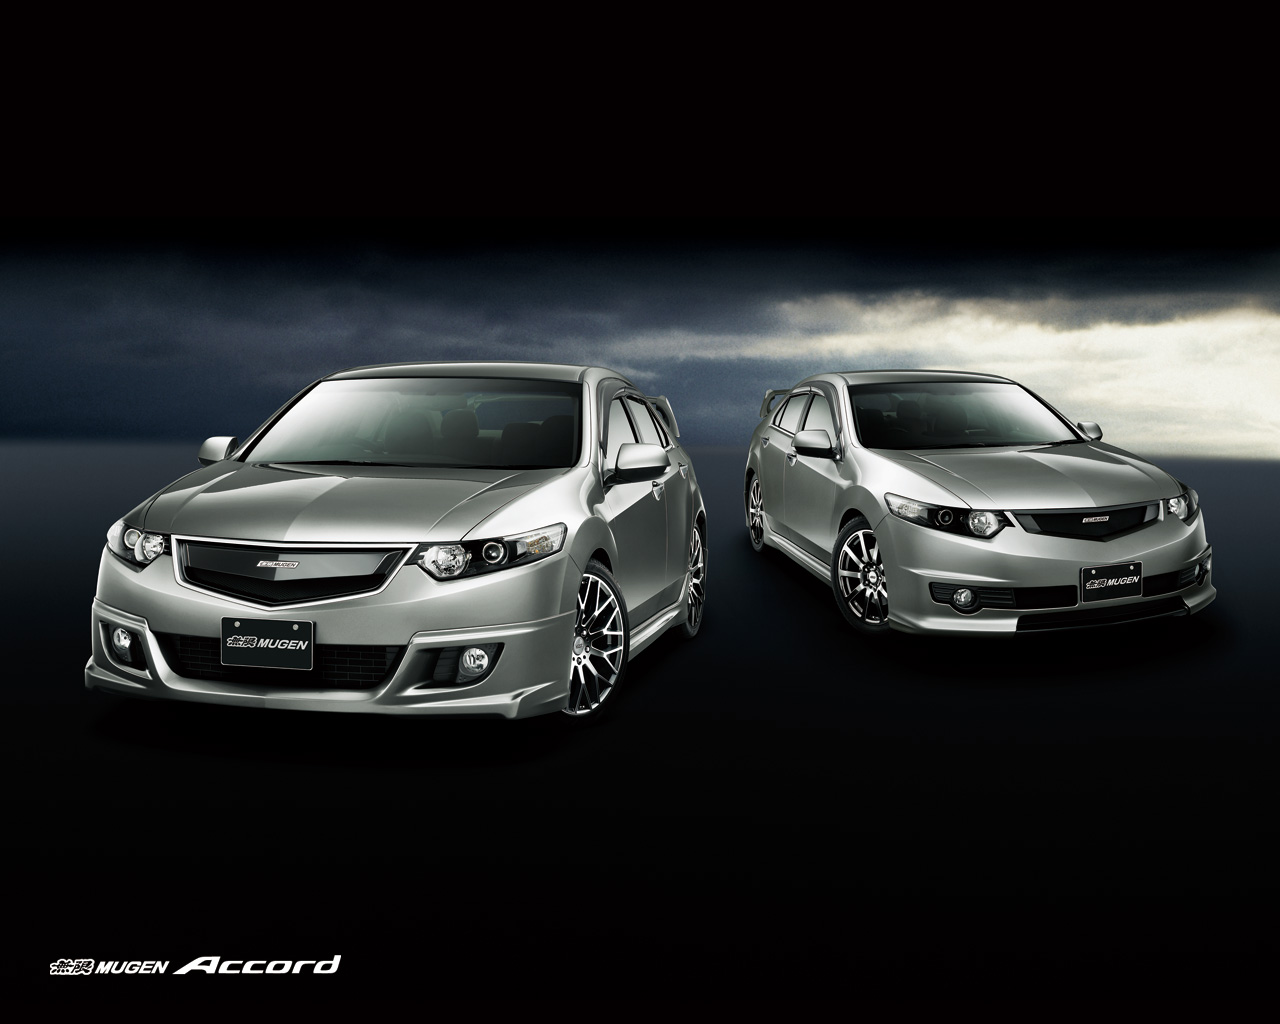 Mugen Presents Body Kit For the New Accord - autoevolution